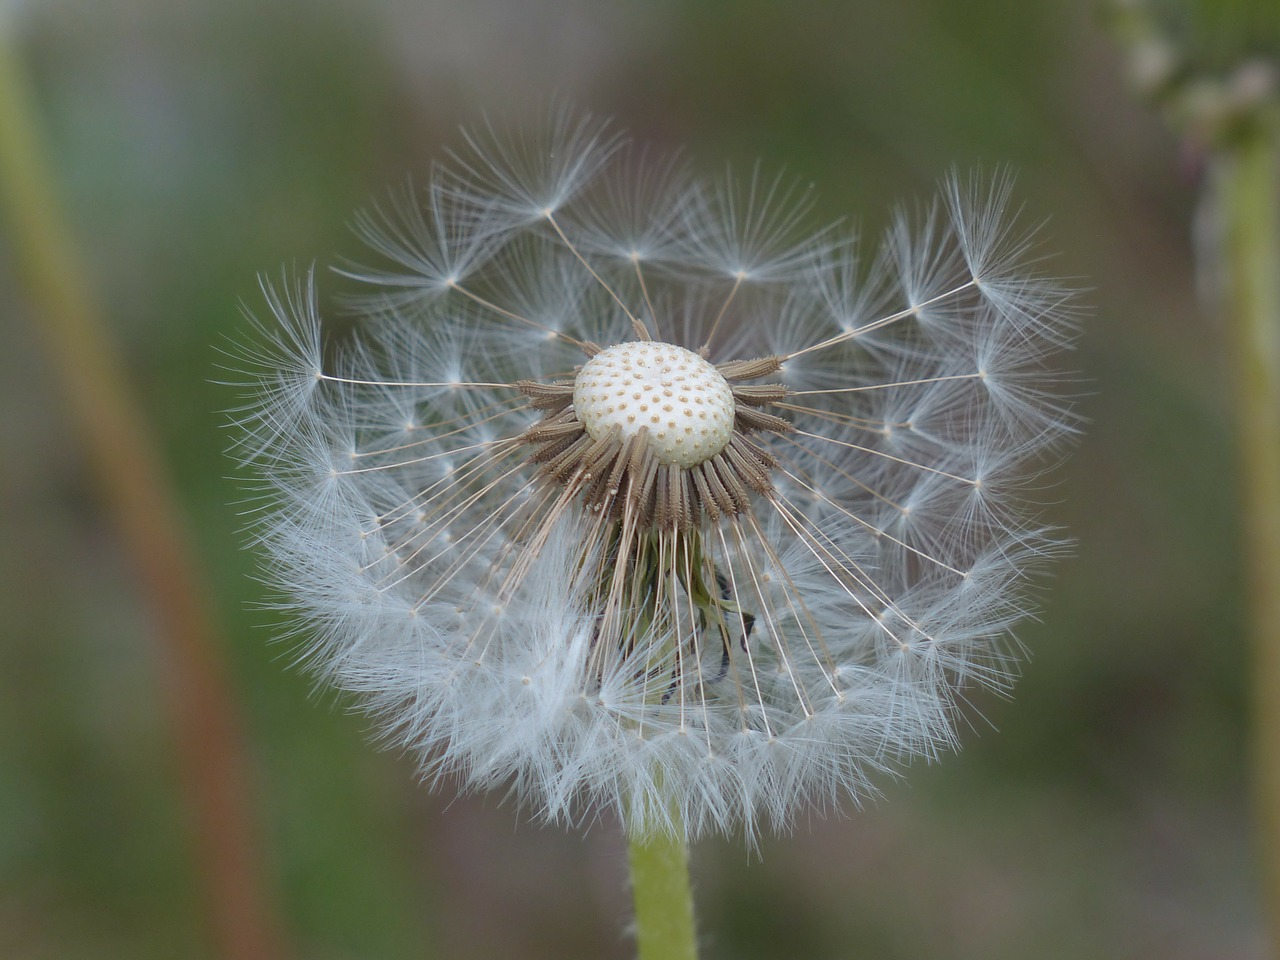 dandelion seeds common dandelion free photo